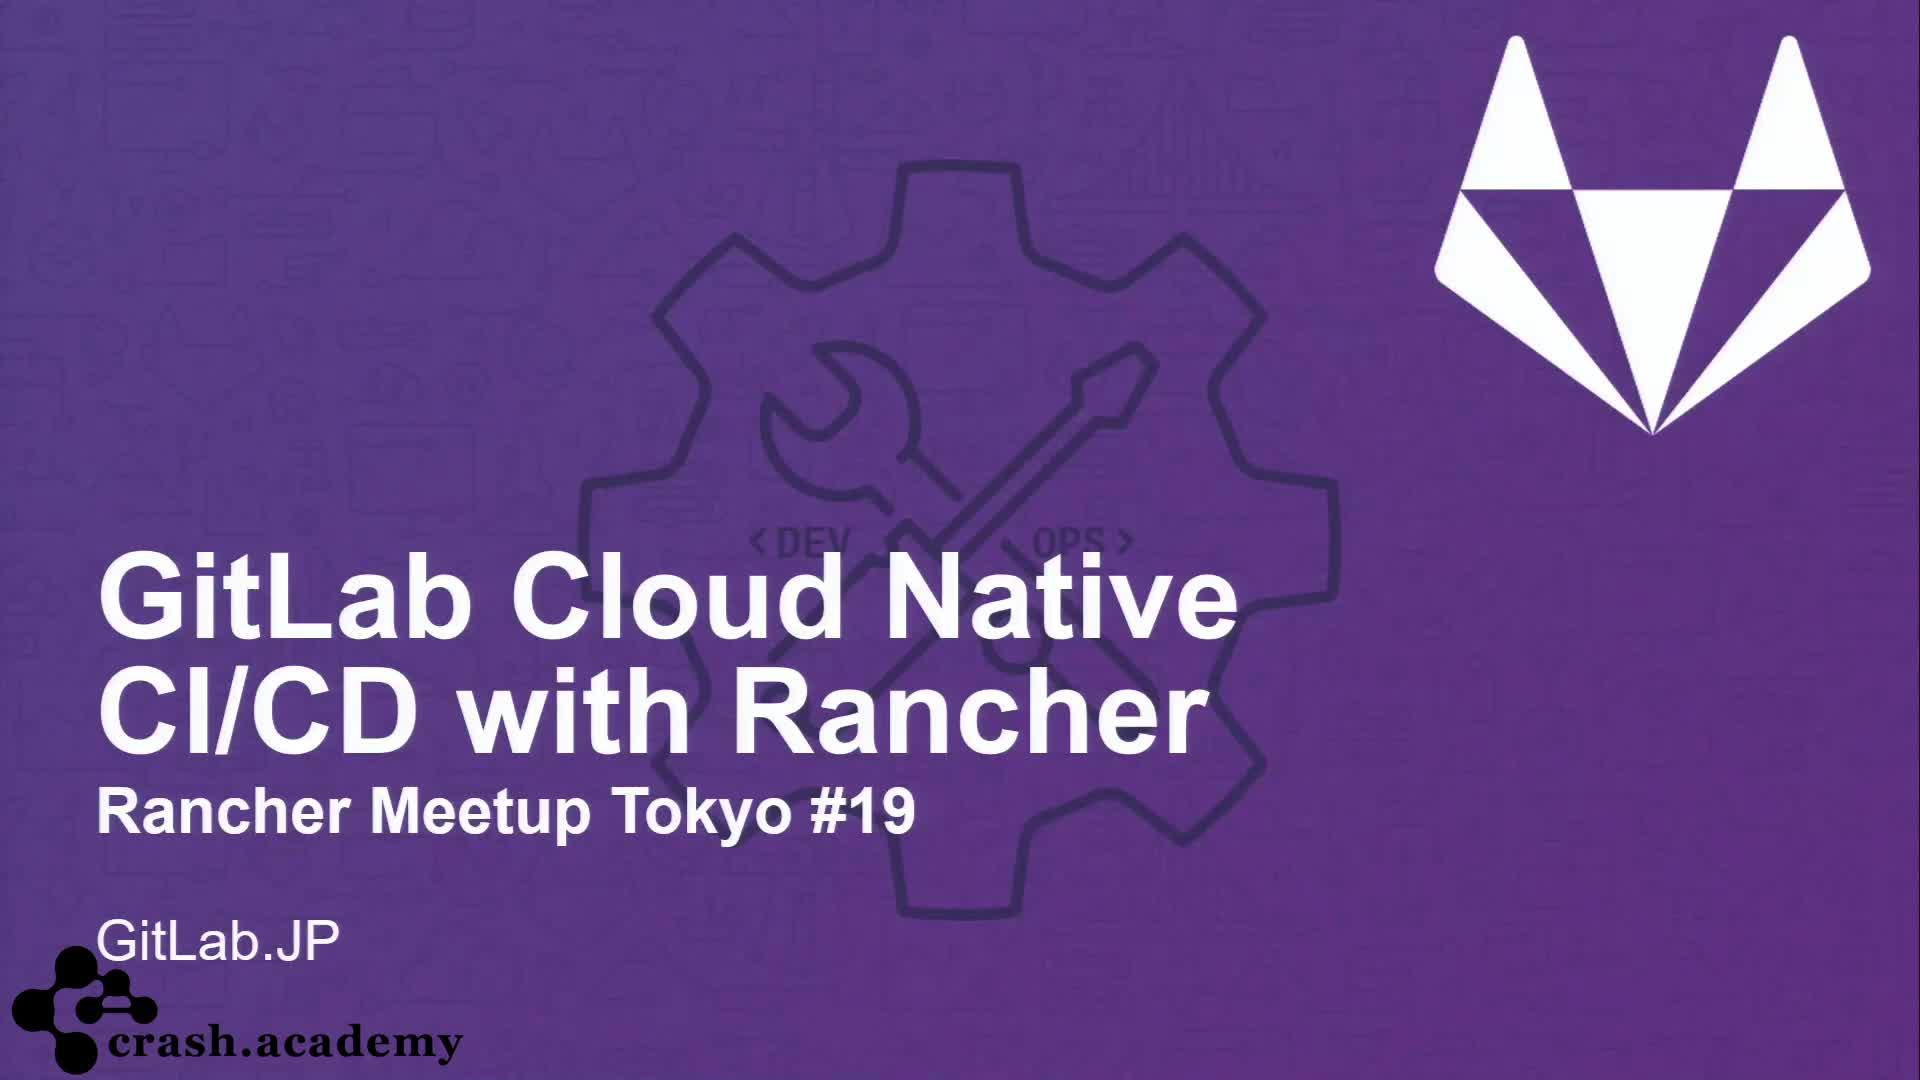 GitLab Cloud Native CI/CD With Rancher